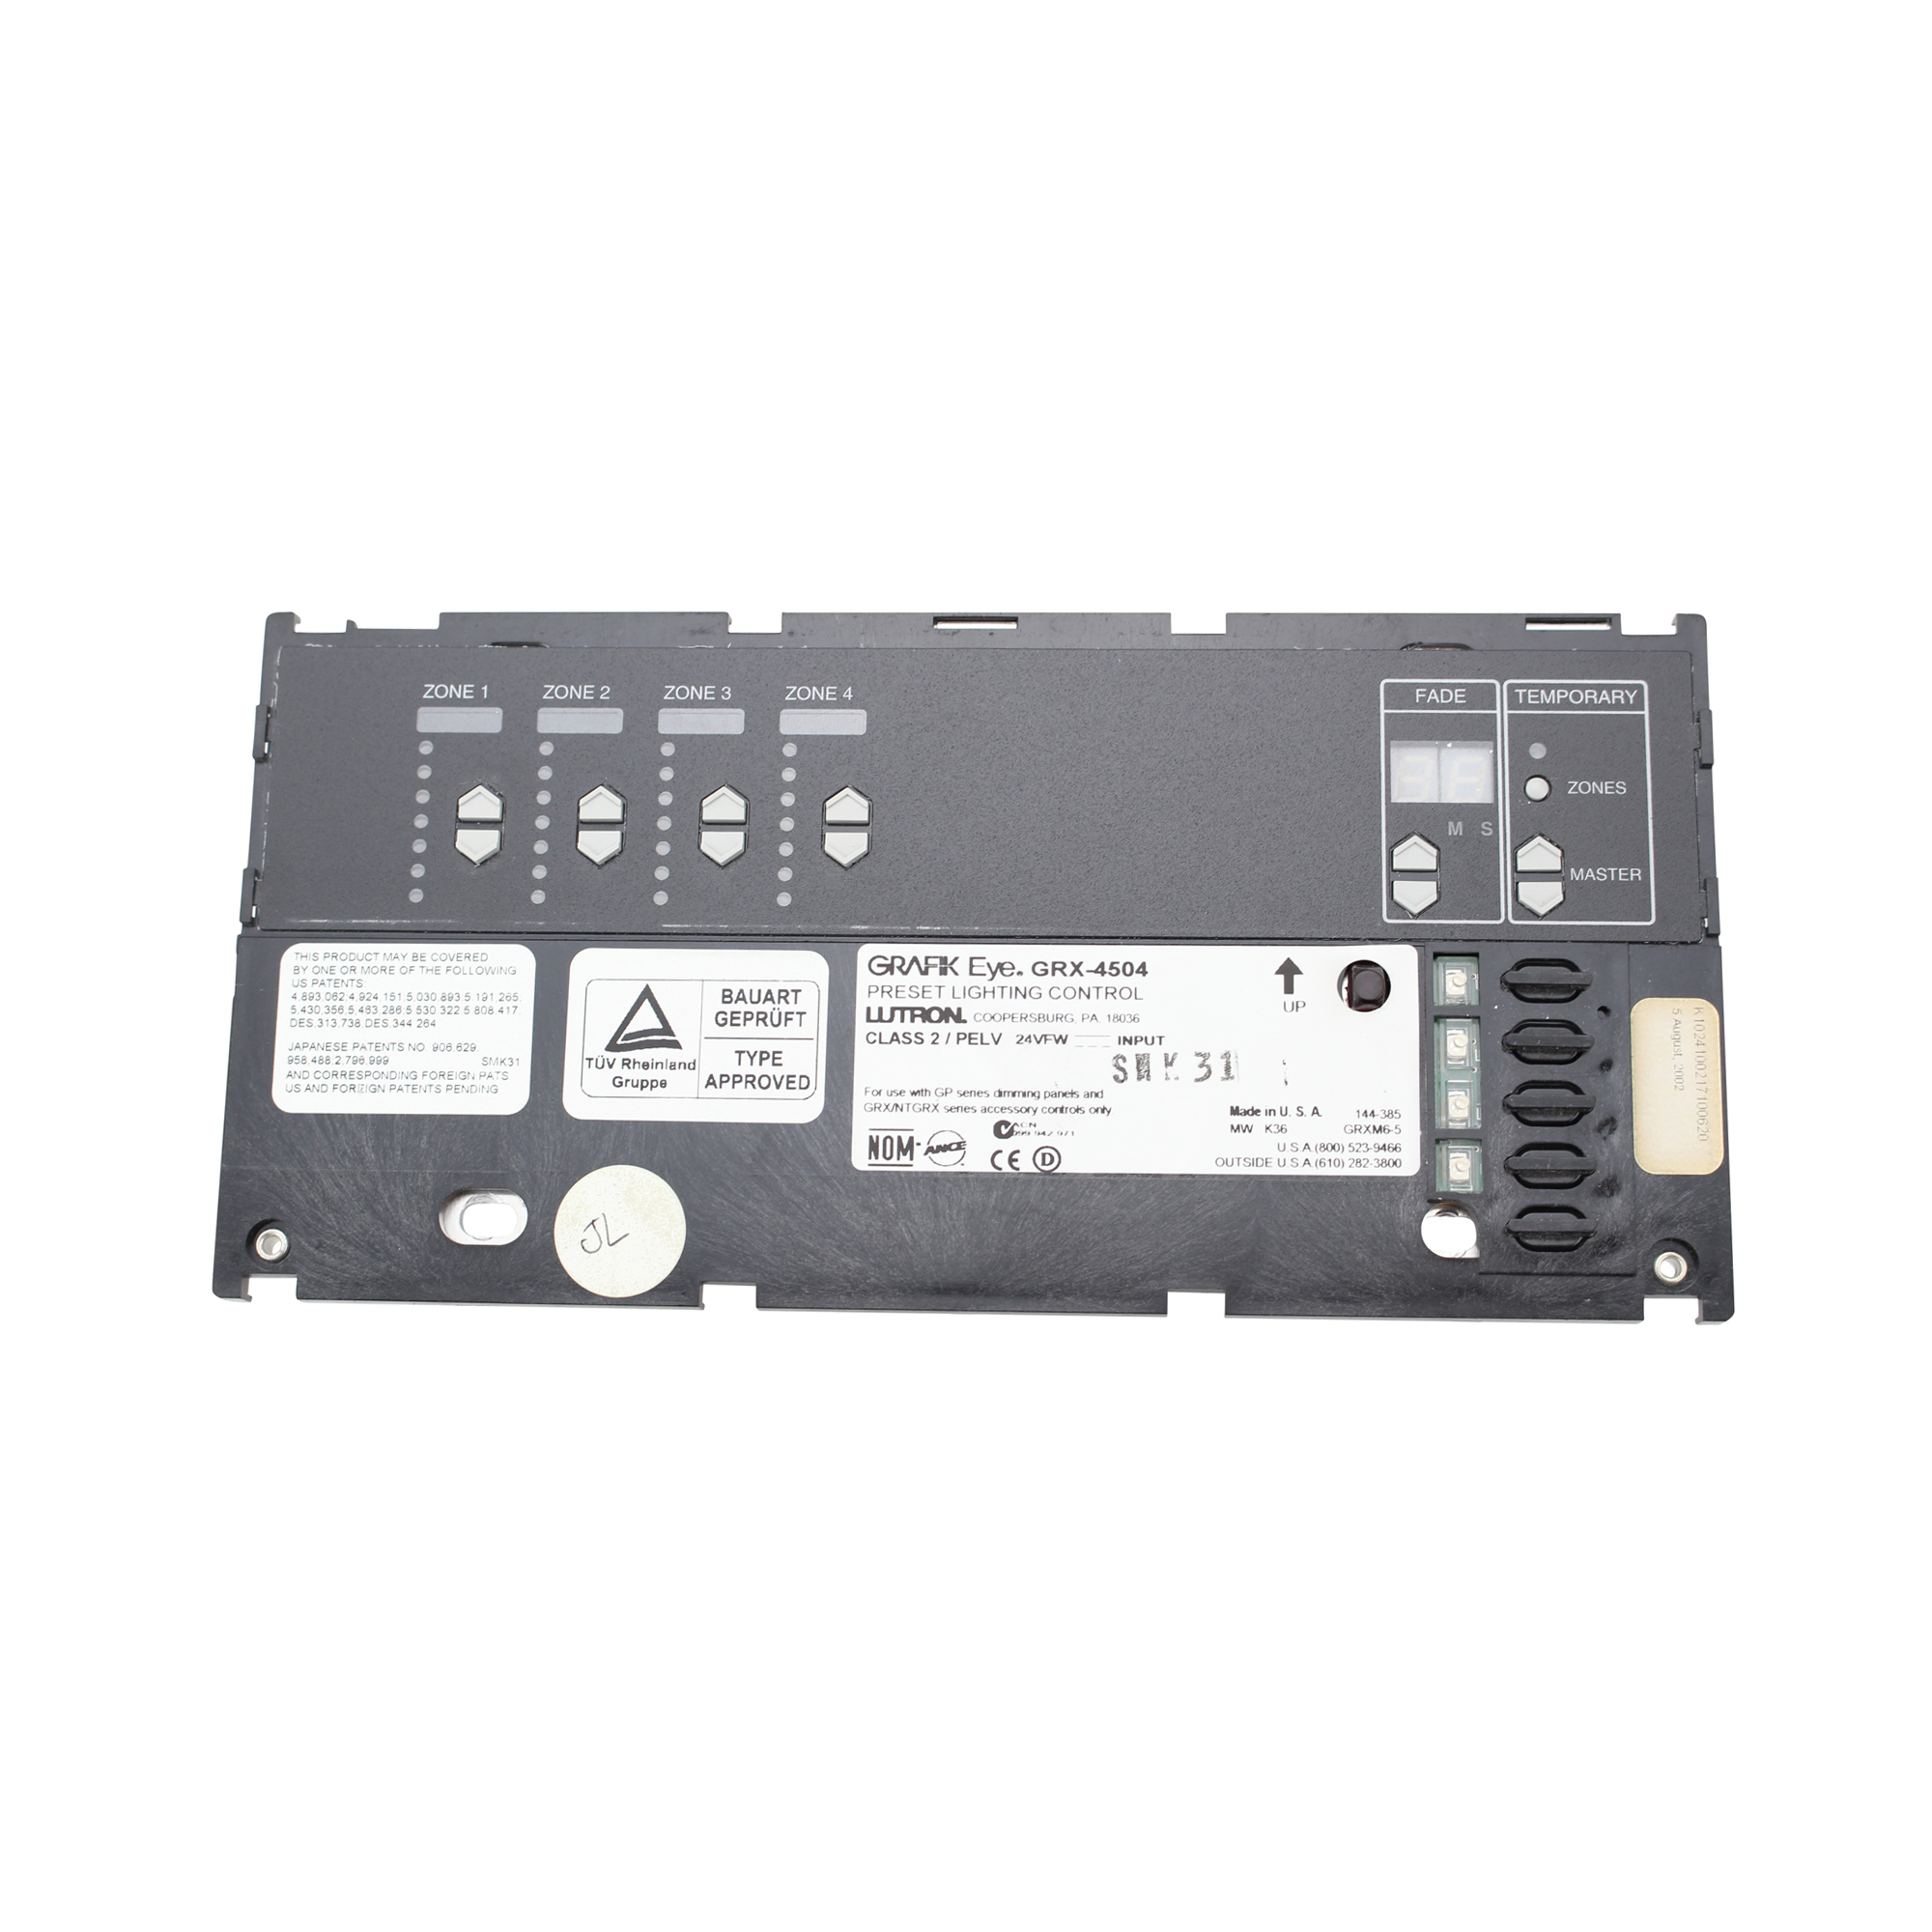 Lutron 4 Zone Lighting Control Lutron Grx-4504-twh Grafik Eye 4000 Series 4 Zone Lighting